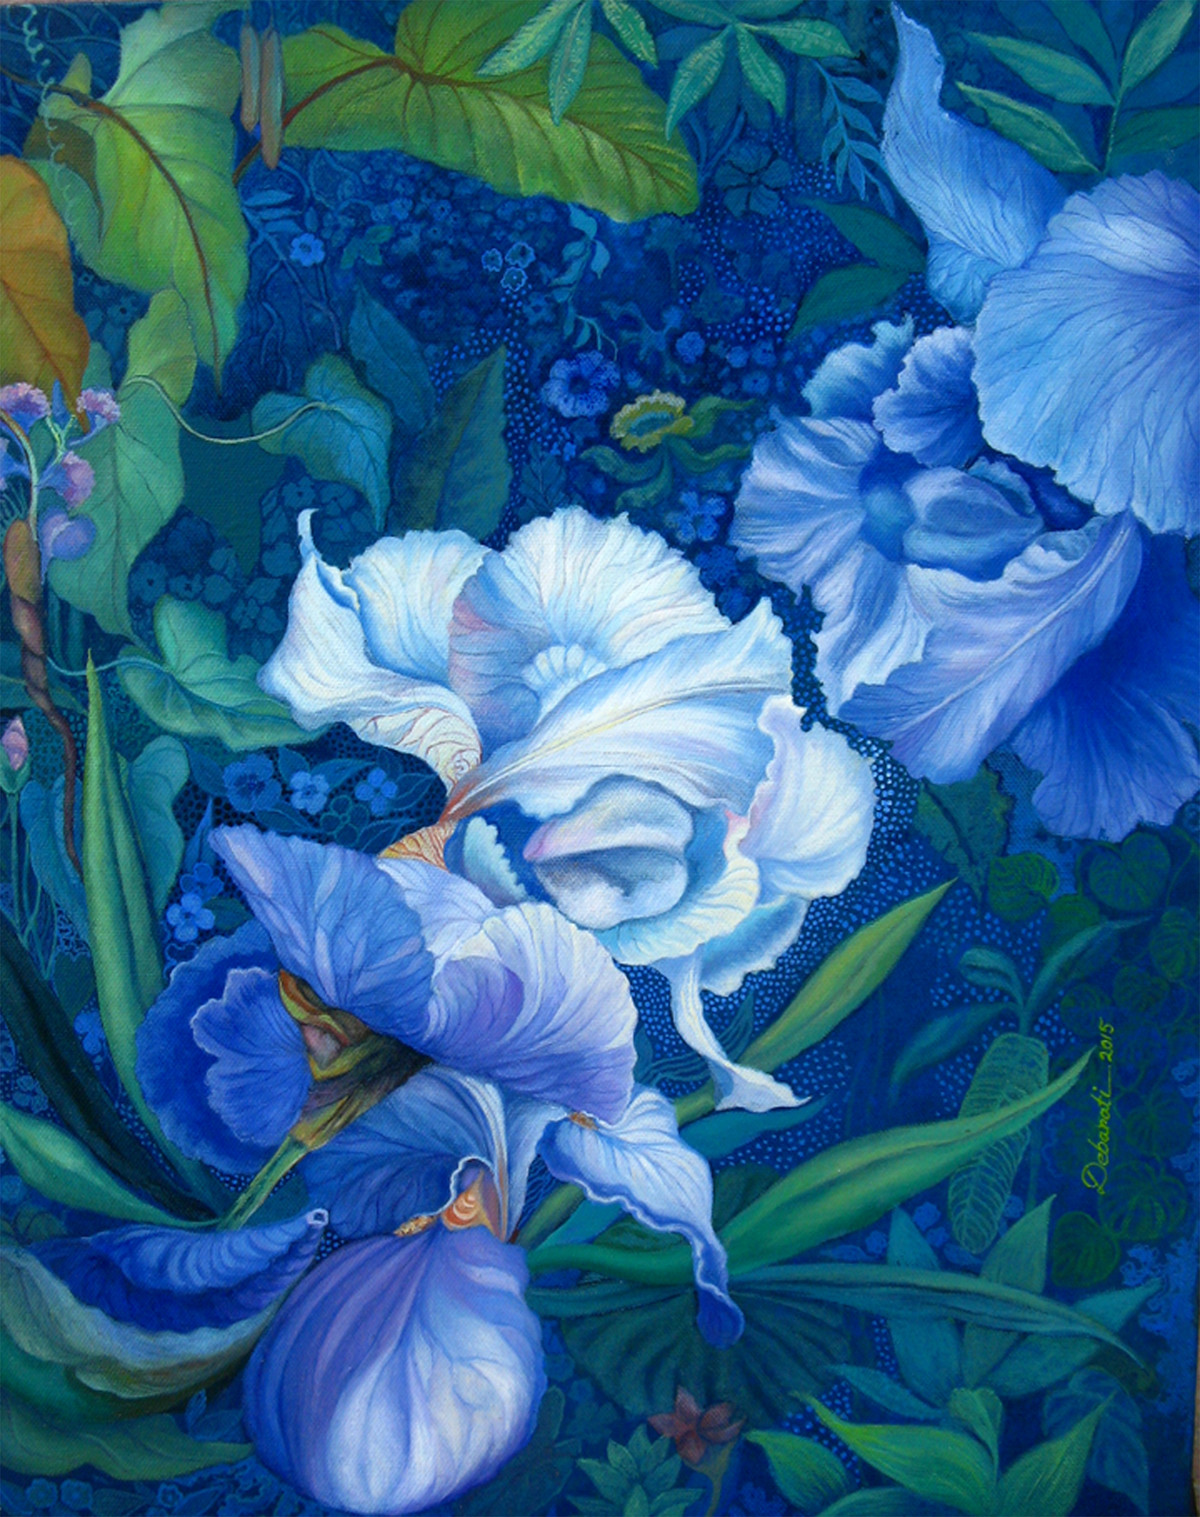 Flower in Blue - Oil paining by Debarati RoySaha